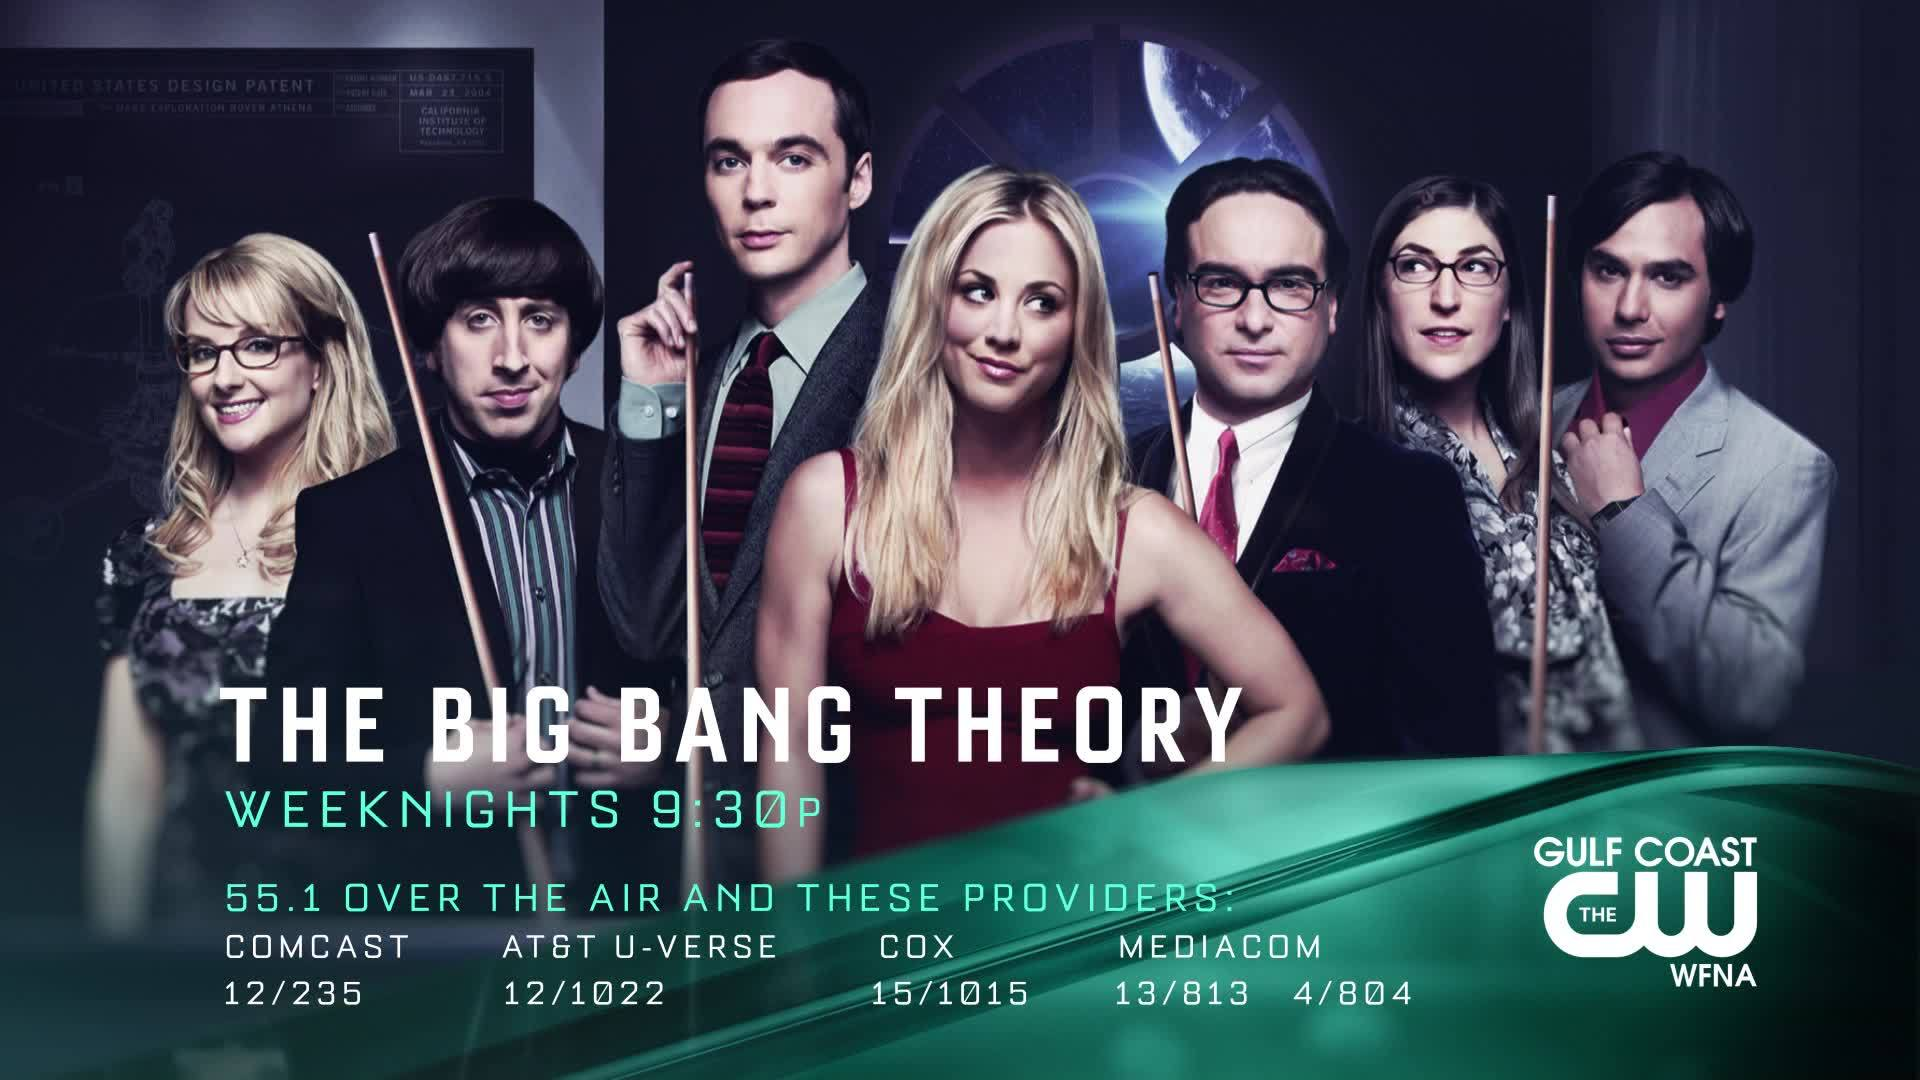 Big Bang Theory Now on The Gulf Coast CW!